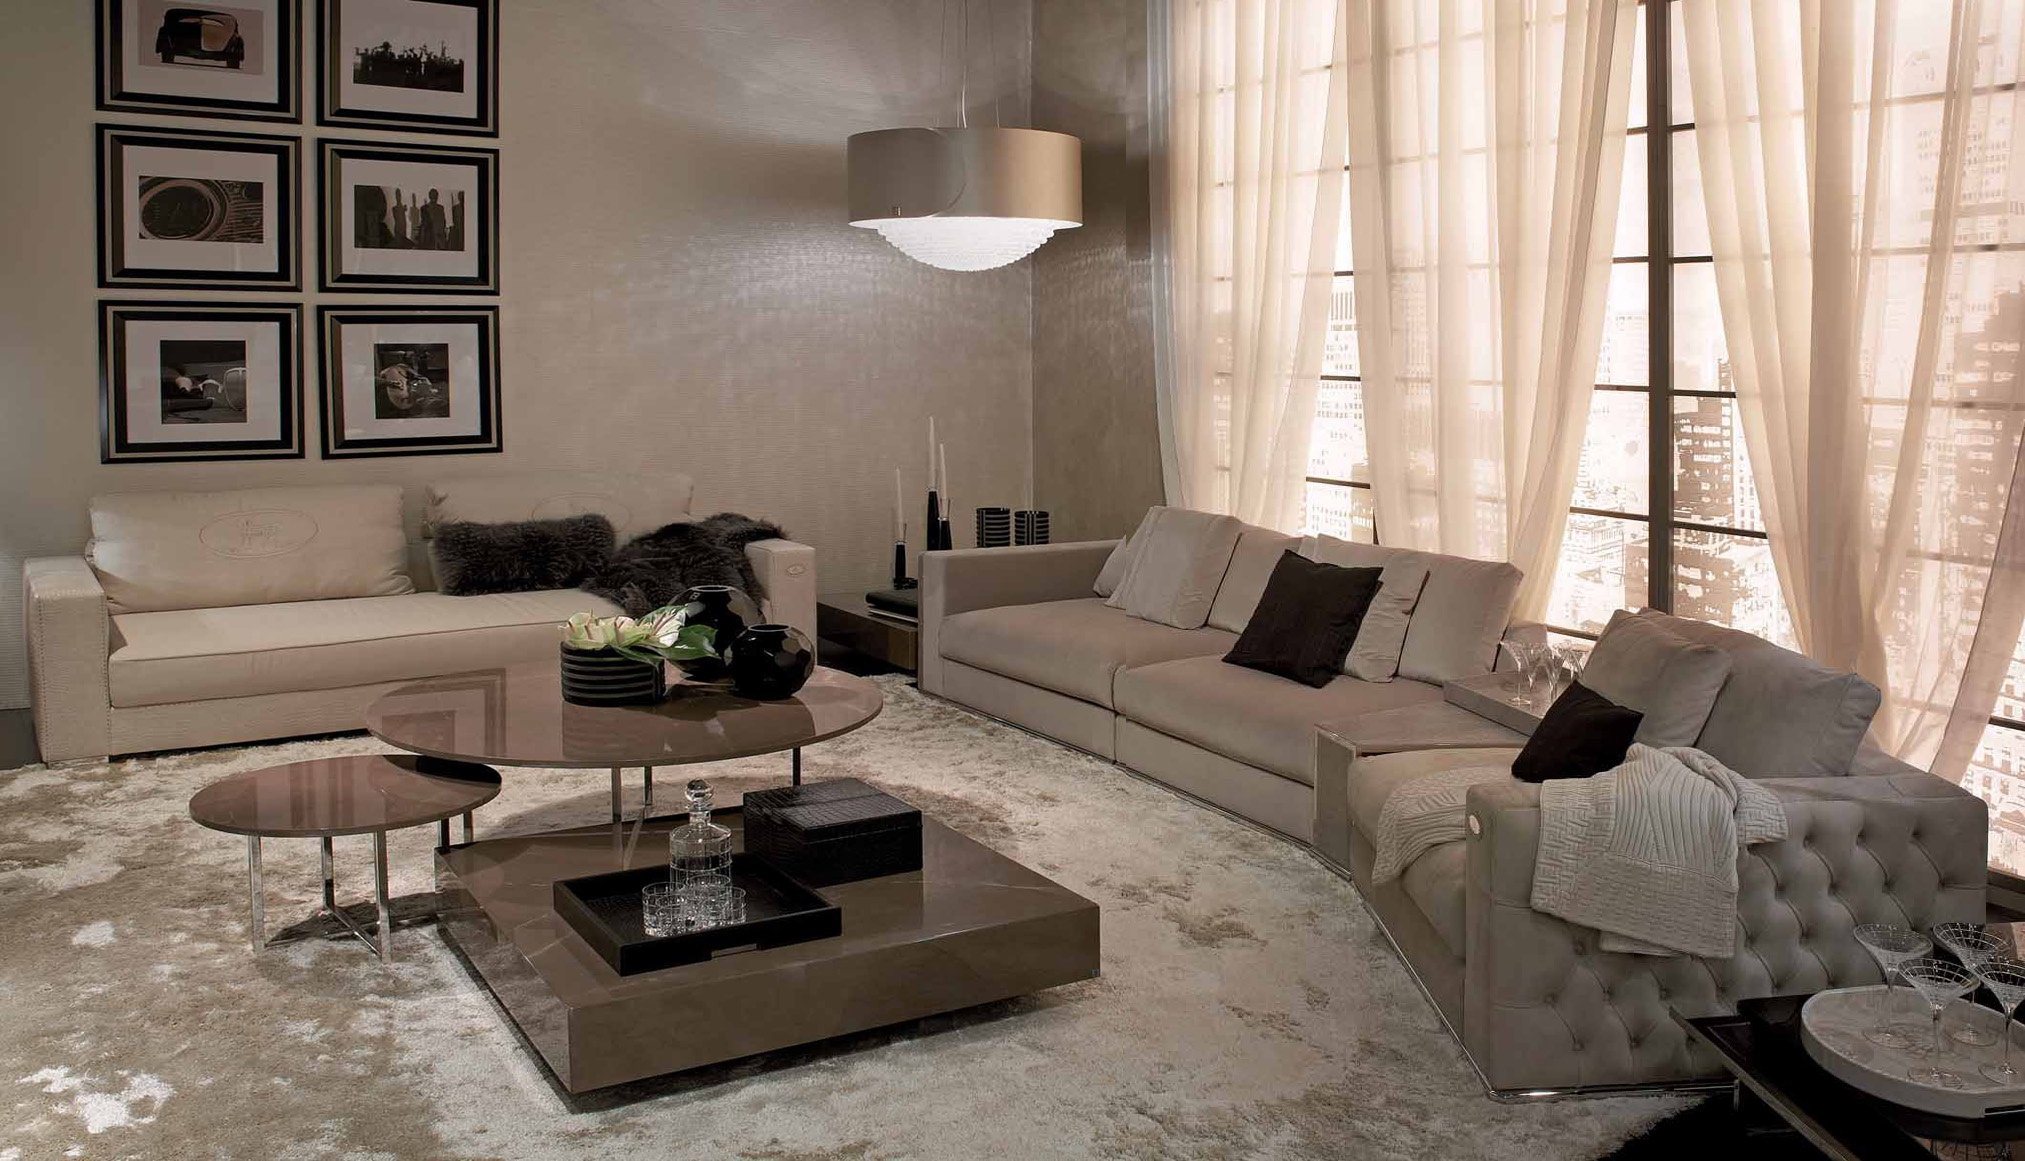 plaza picture media of perabot home facebook furniture mall profile ldp id